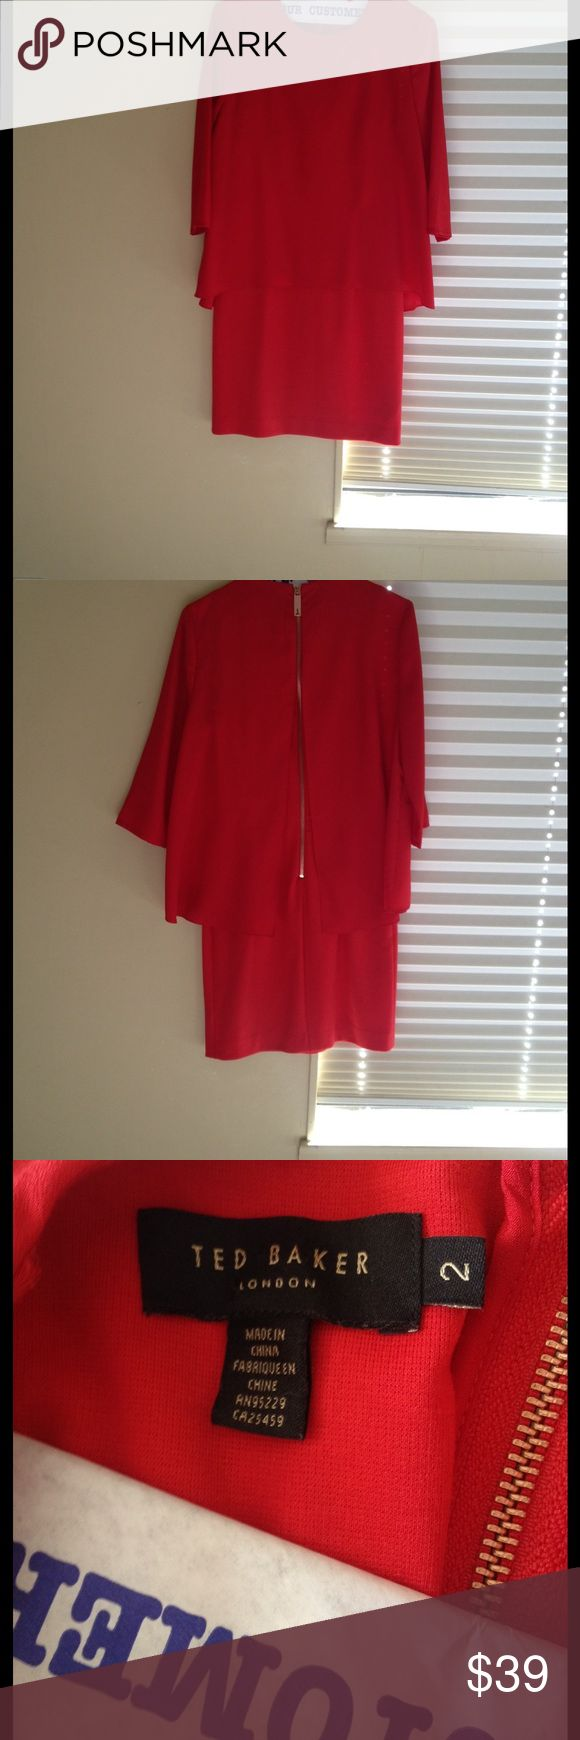 Ted Baker Red Dress : teds size 2 Excellent used condition just back from dry cleaner. Teds Size 2! Check their size chart on their website. Ted Baker Dresses